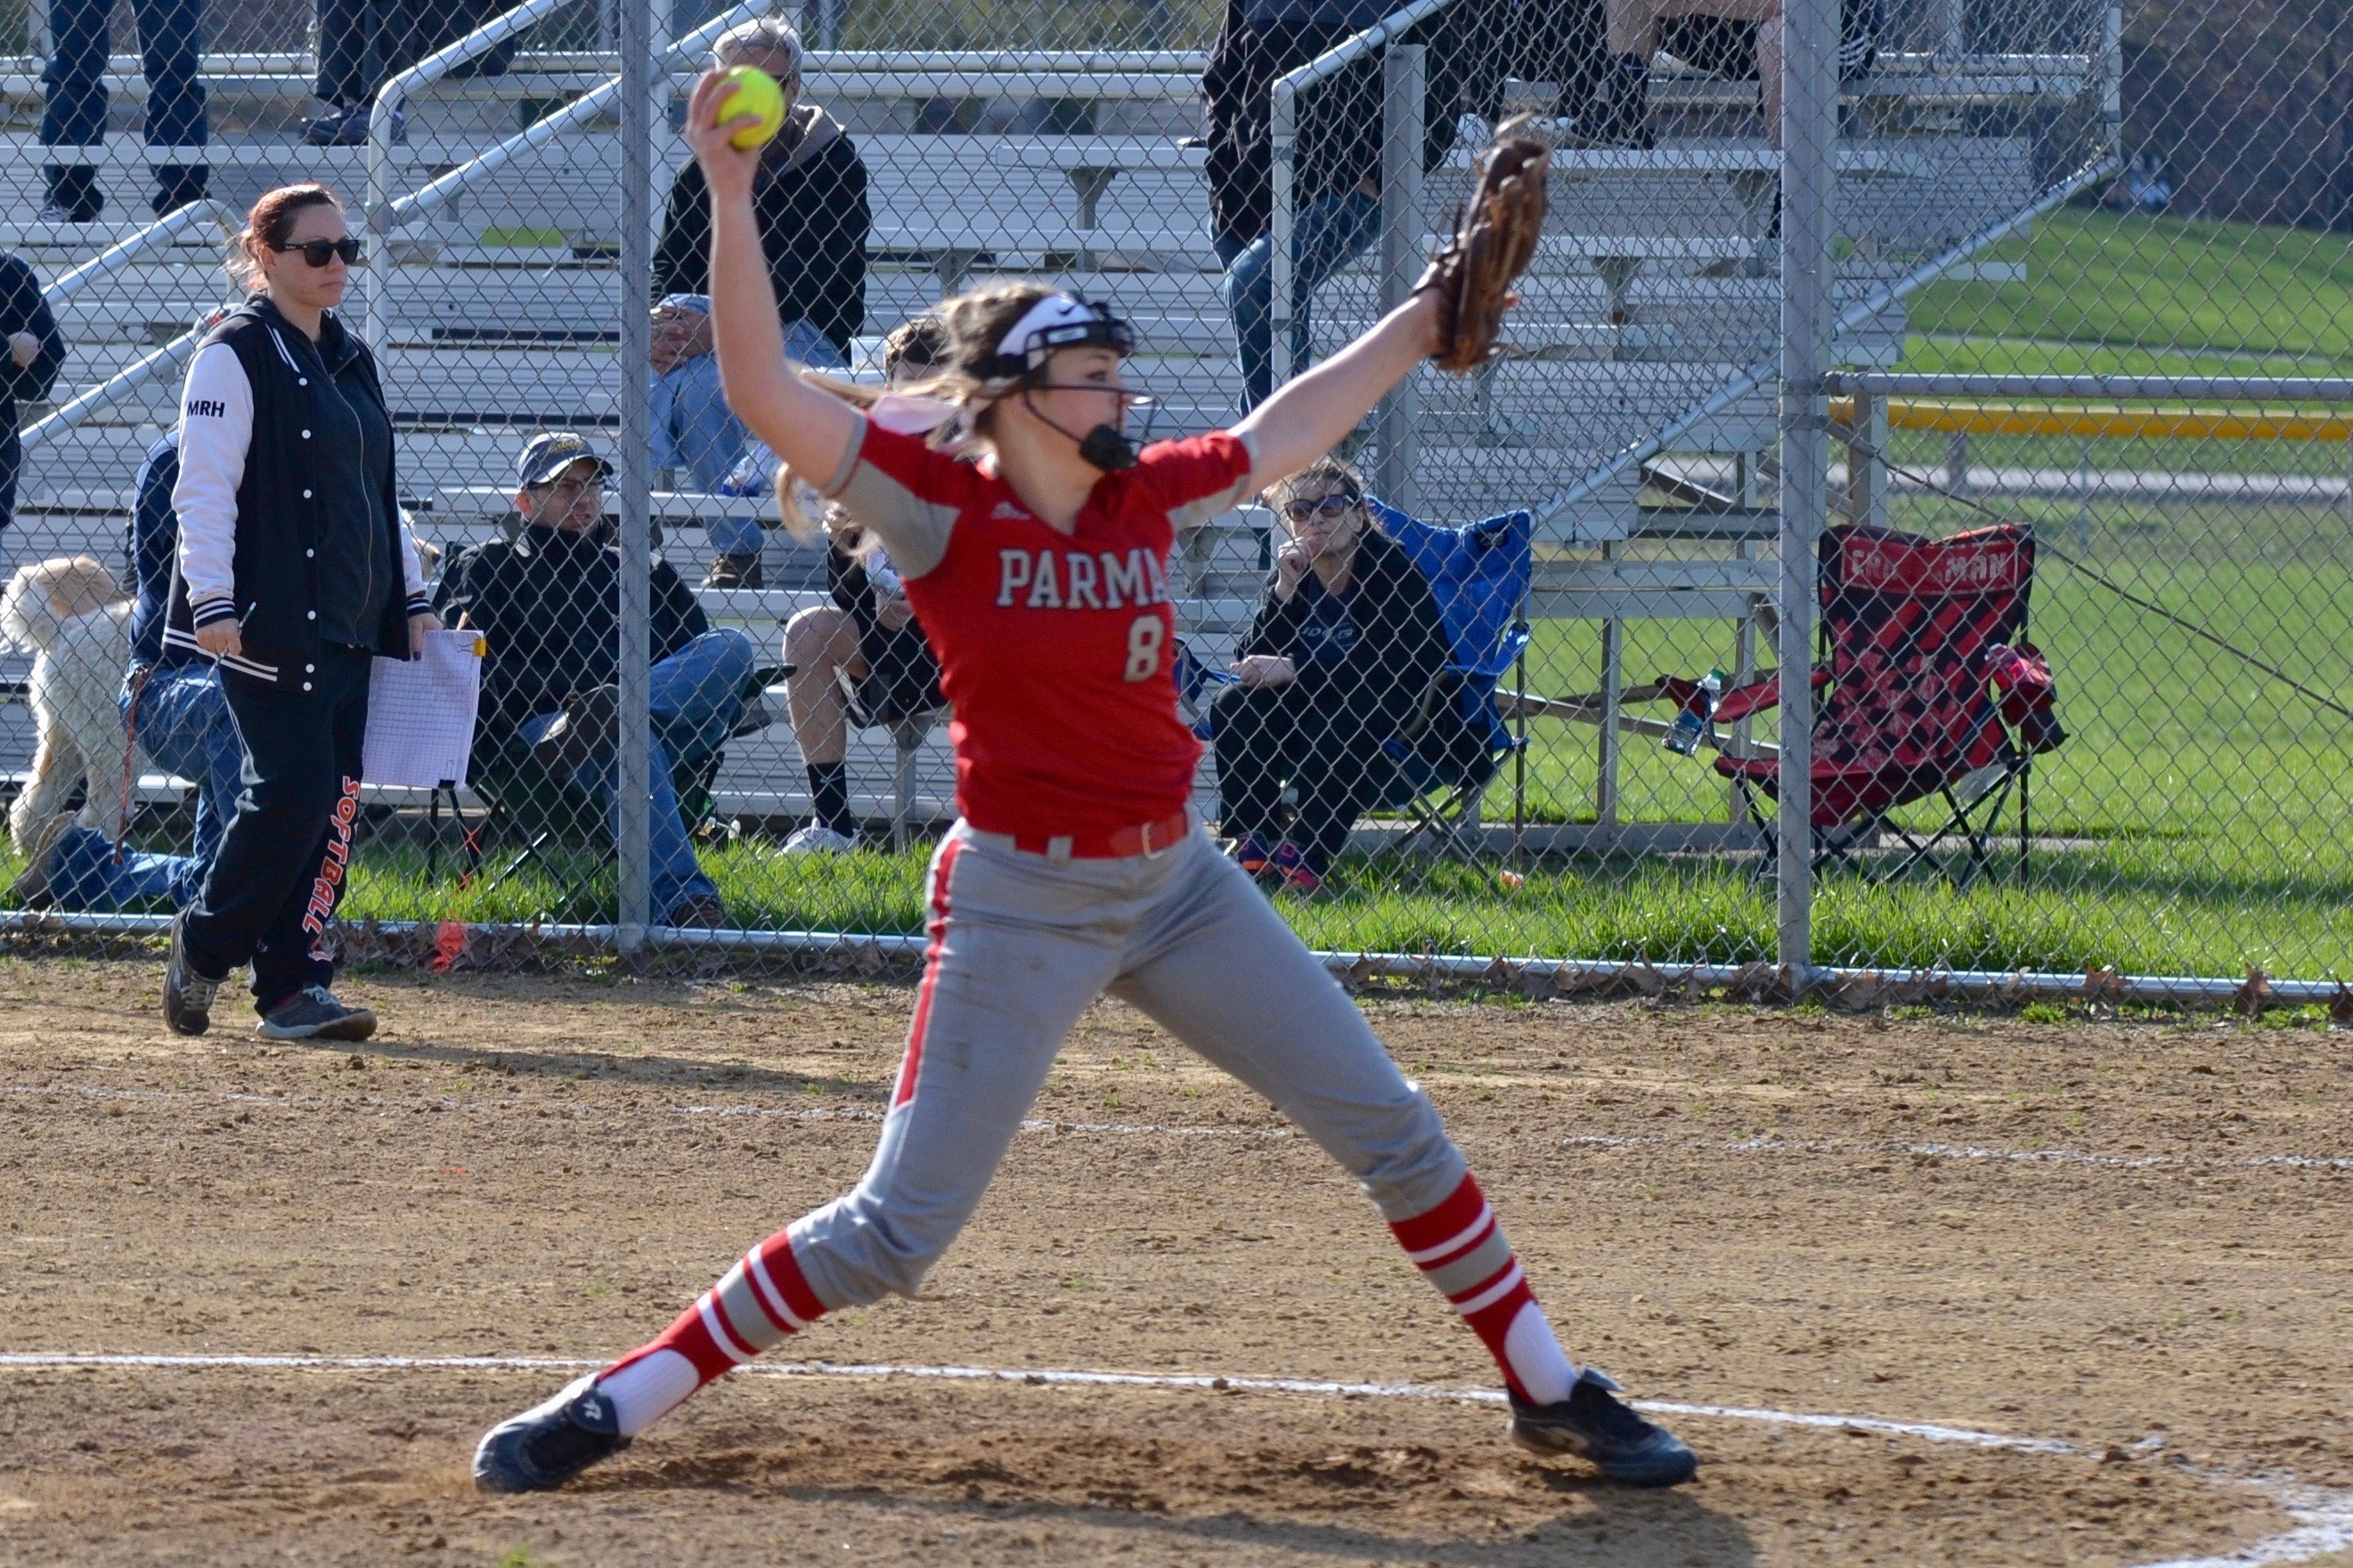 Jackson pitches the Redmen to a 21-5 victory over Rocky River; Deutsch and Derosett Lead the Hit Parade